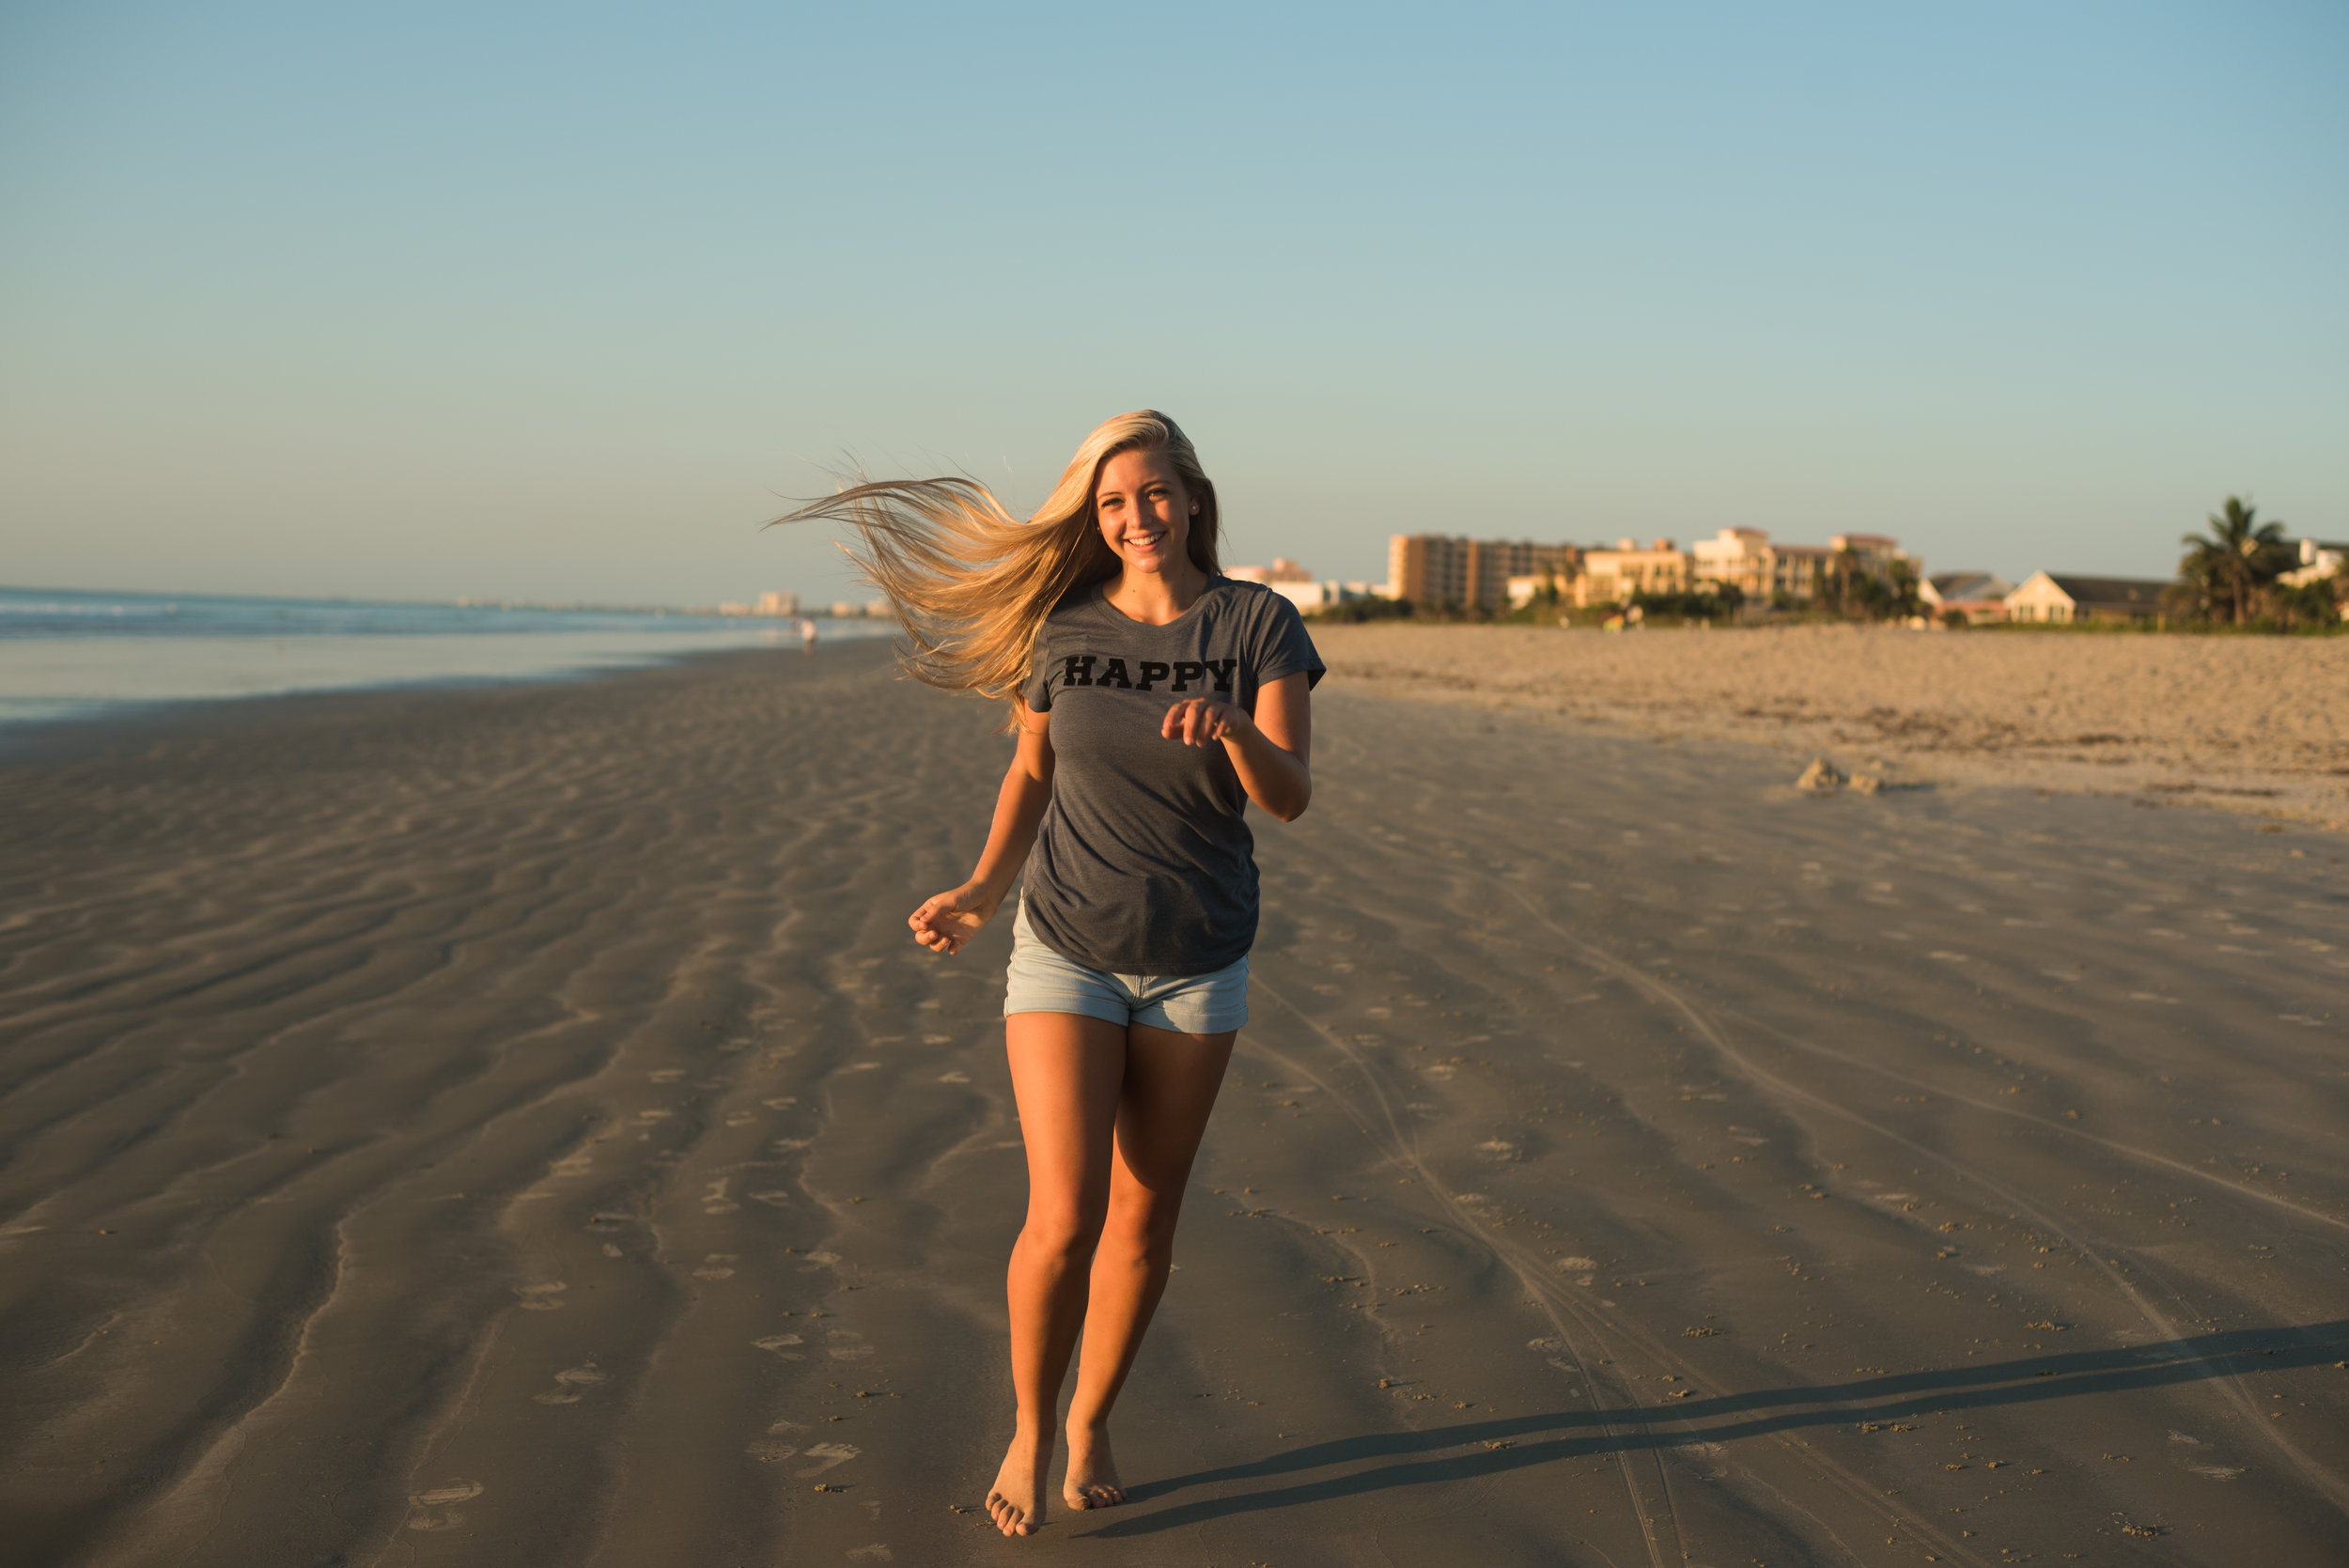 maddie-cocoa-beach-senior-photo-1-28.jpg